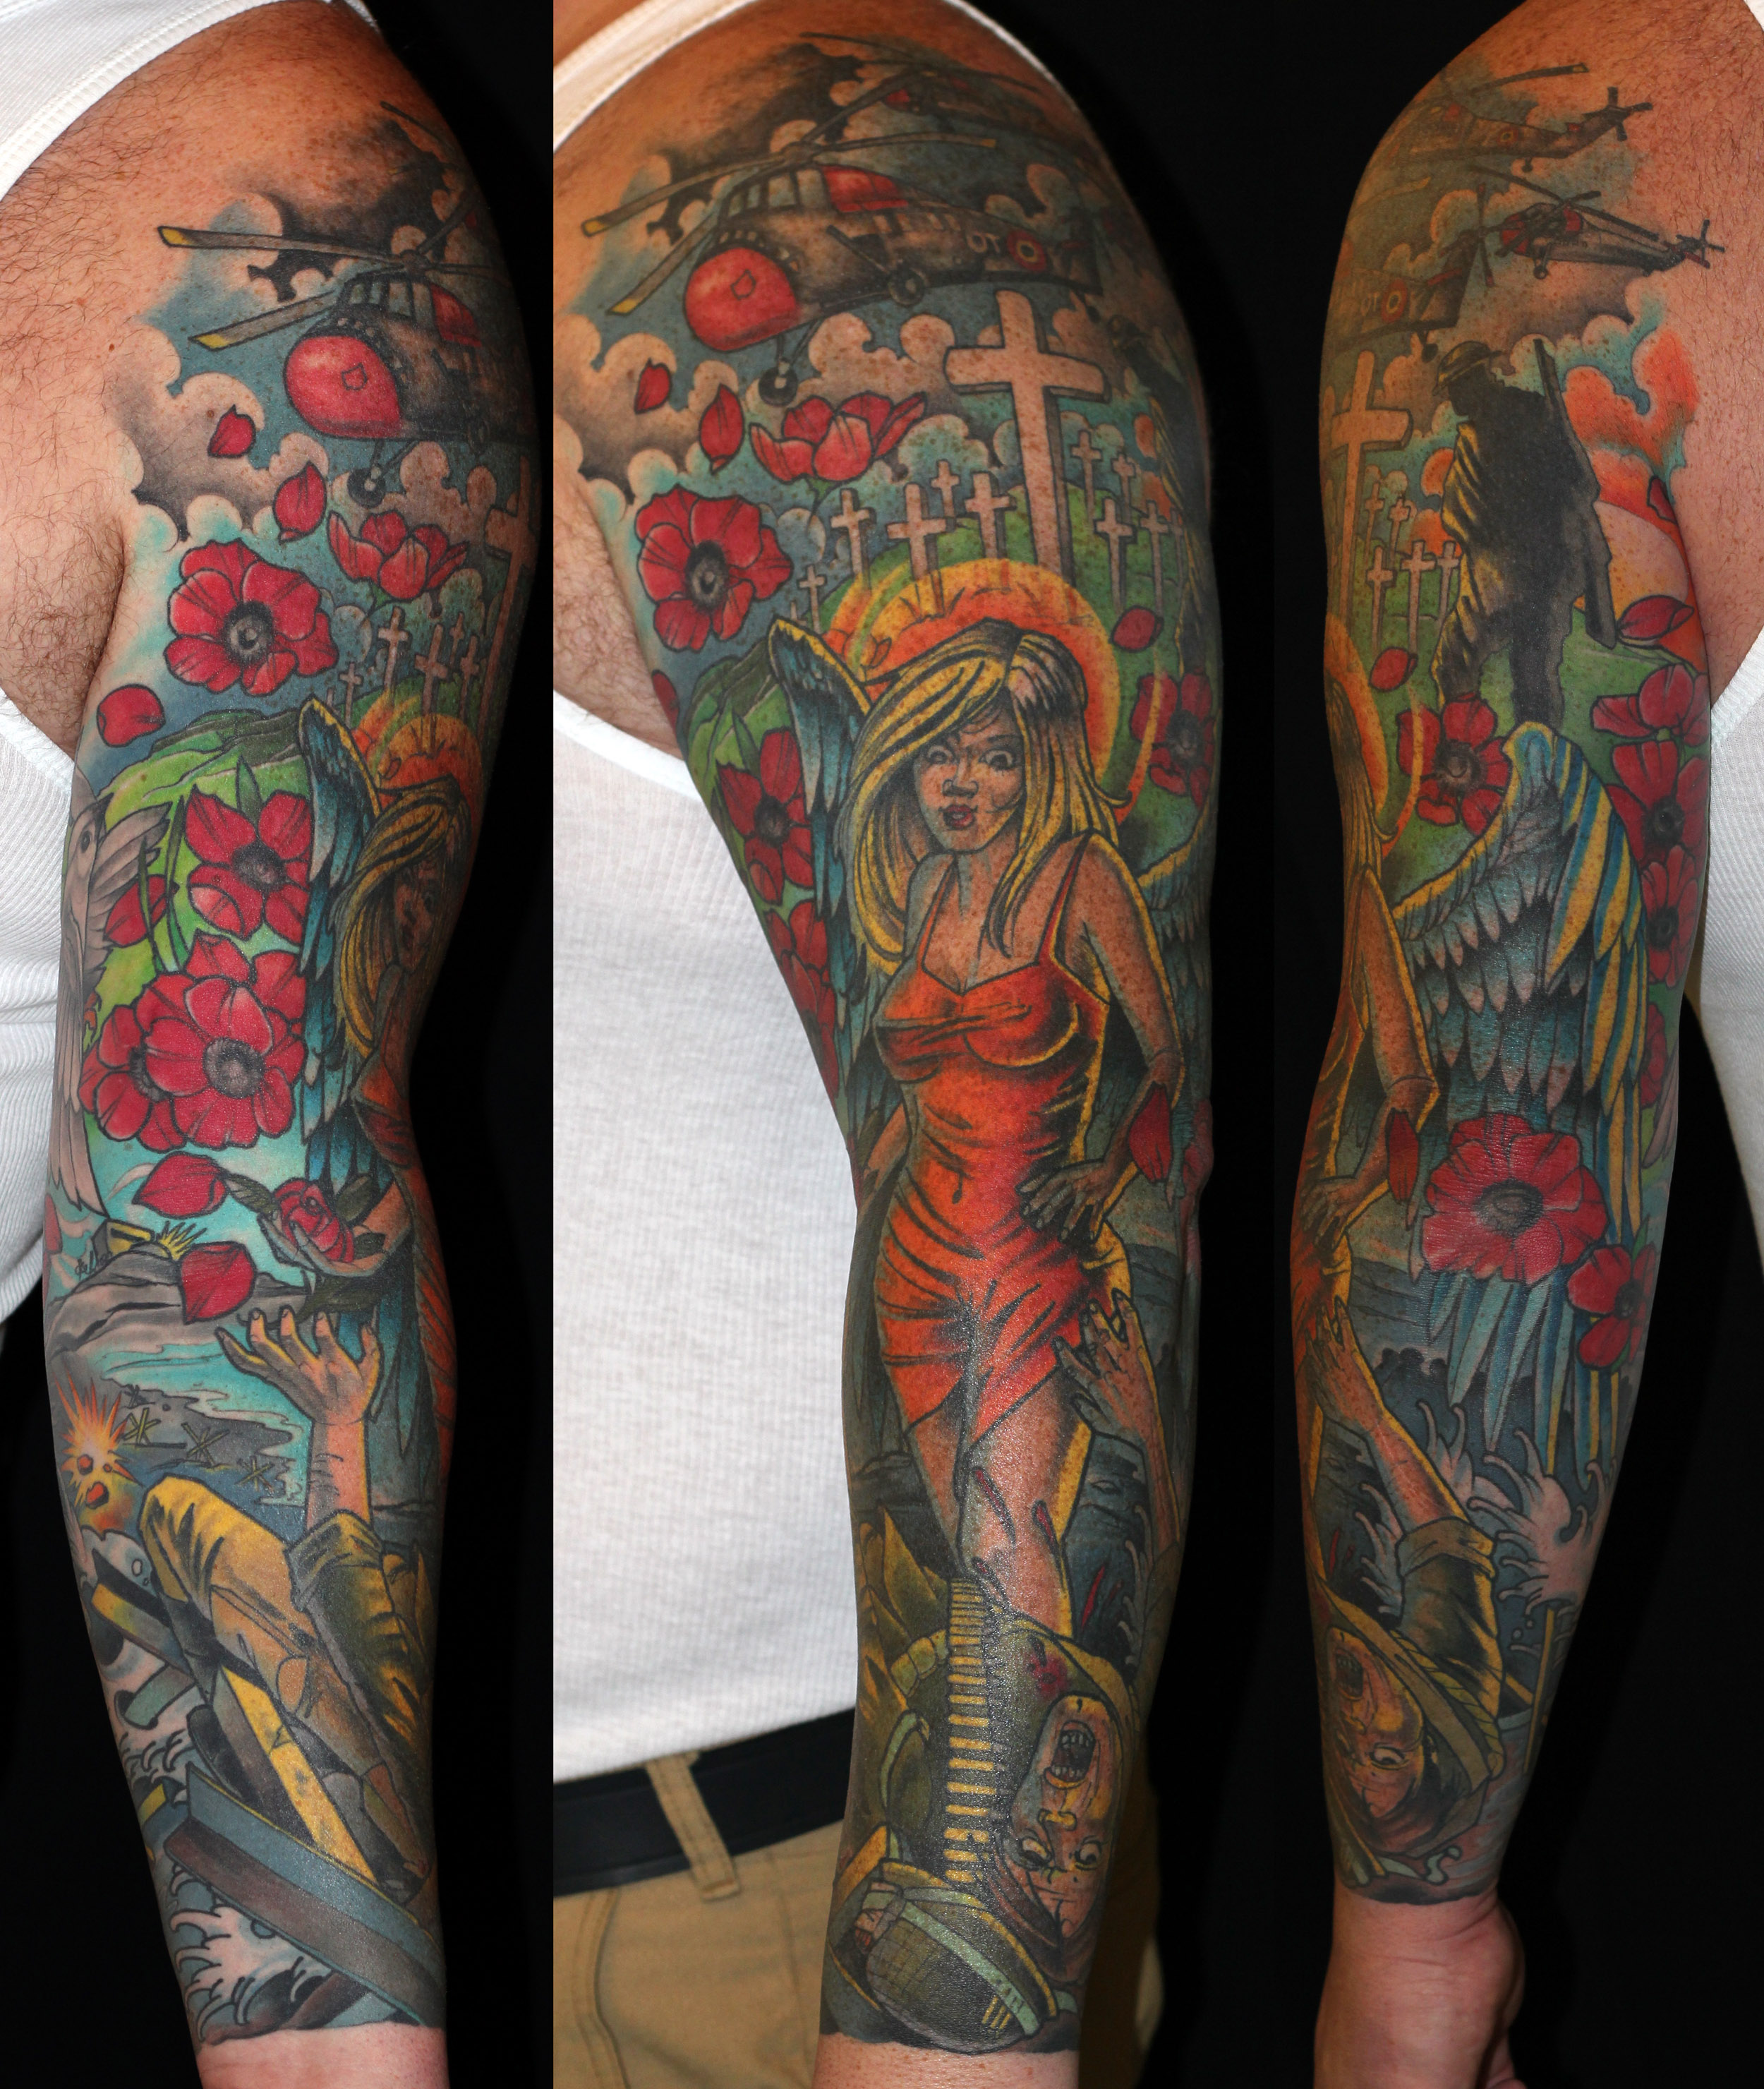 Related Pictures pin design batista sun tattoo tattoos on pinterest